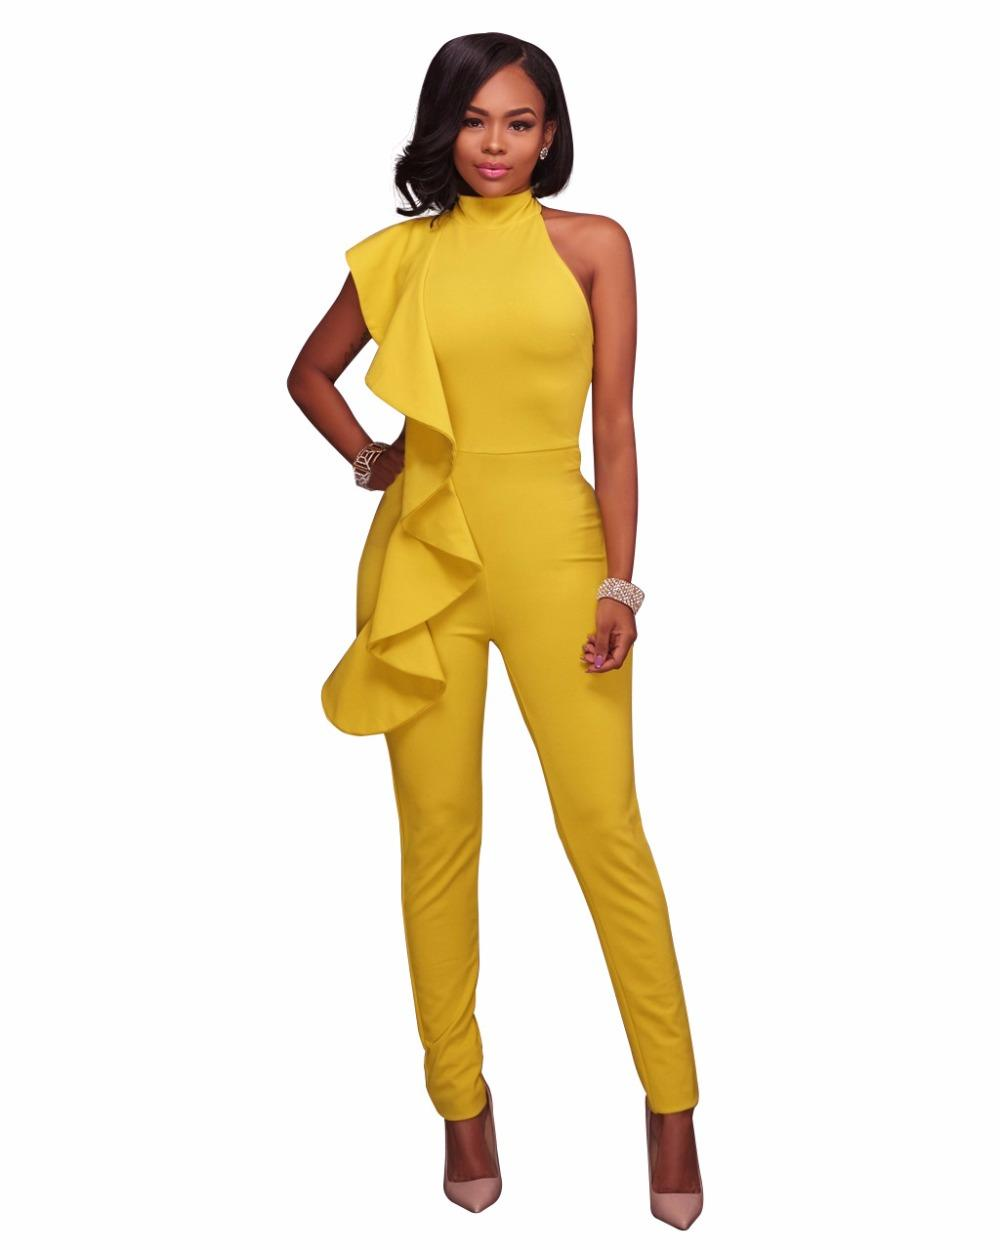 512ee0f32 Ladies Fashion Rompers Yellow Black Sleeveless Womens Wide Legs Jumpsuit  2017 Long Pants Elegant Overalls Macacao Feminino S-XL Jumpsuit Online with  ...